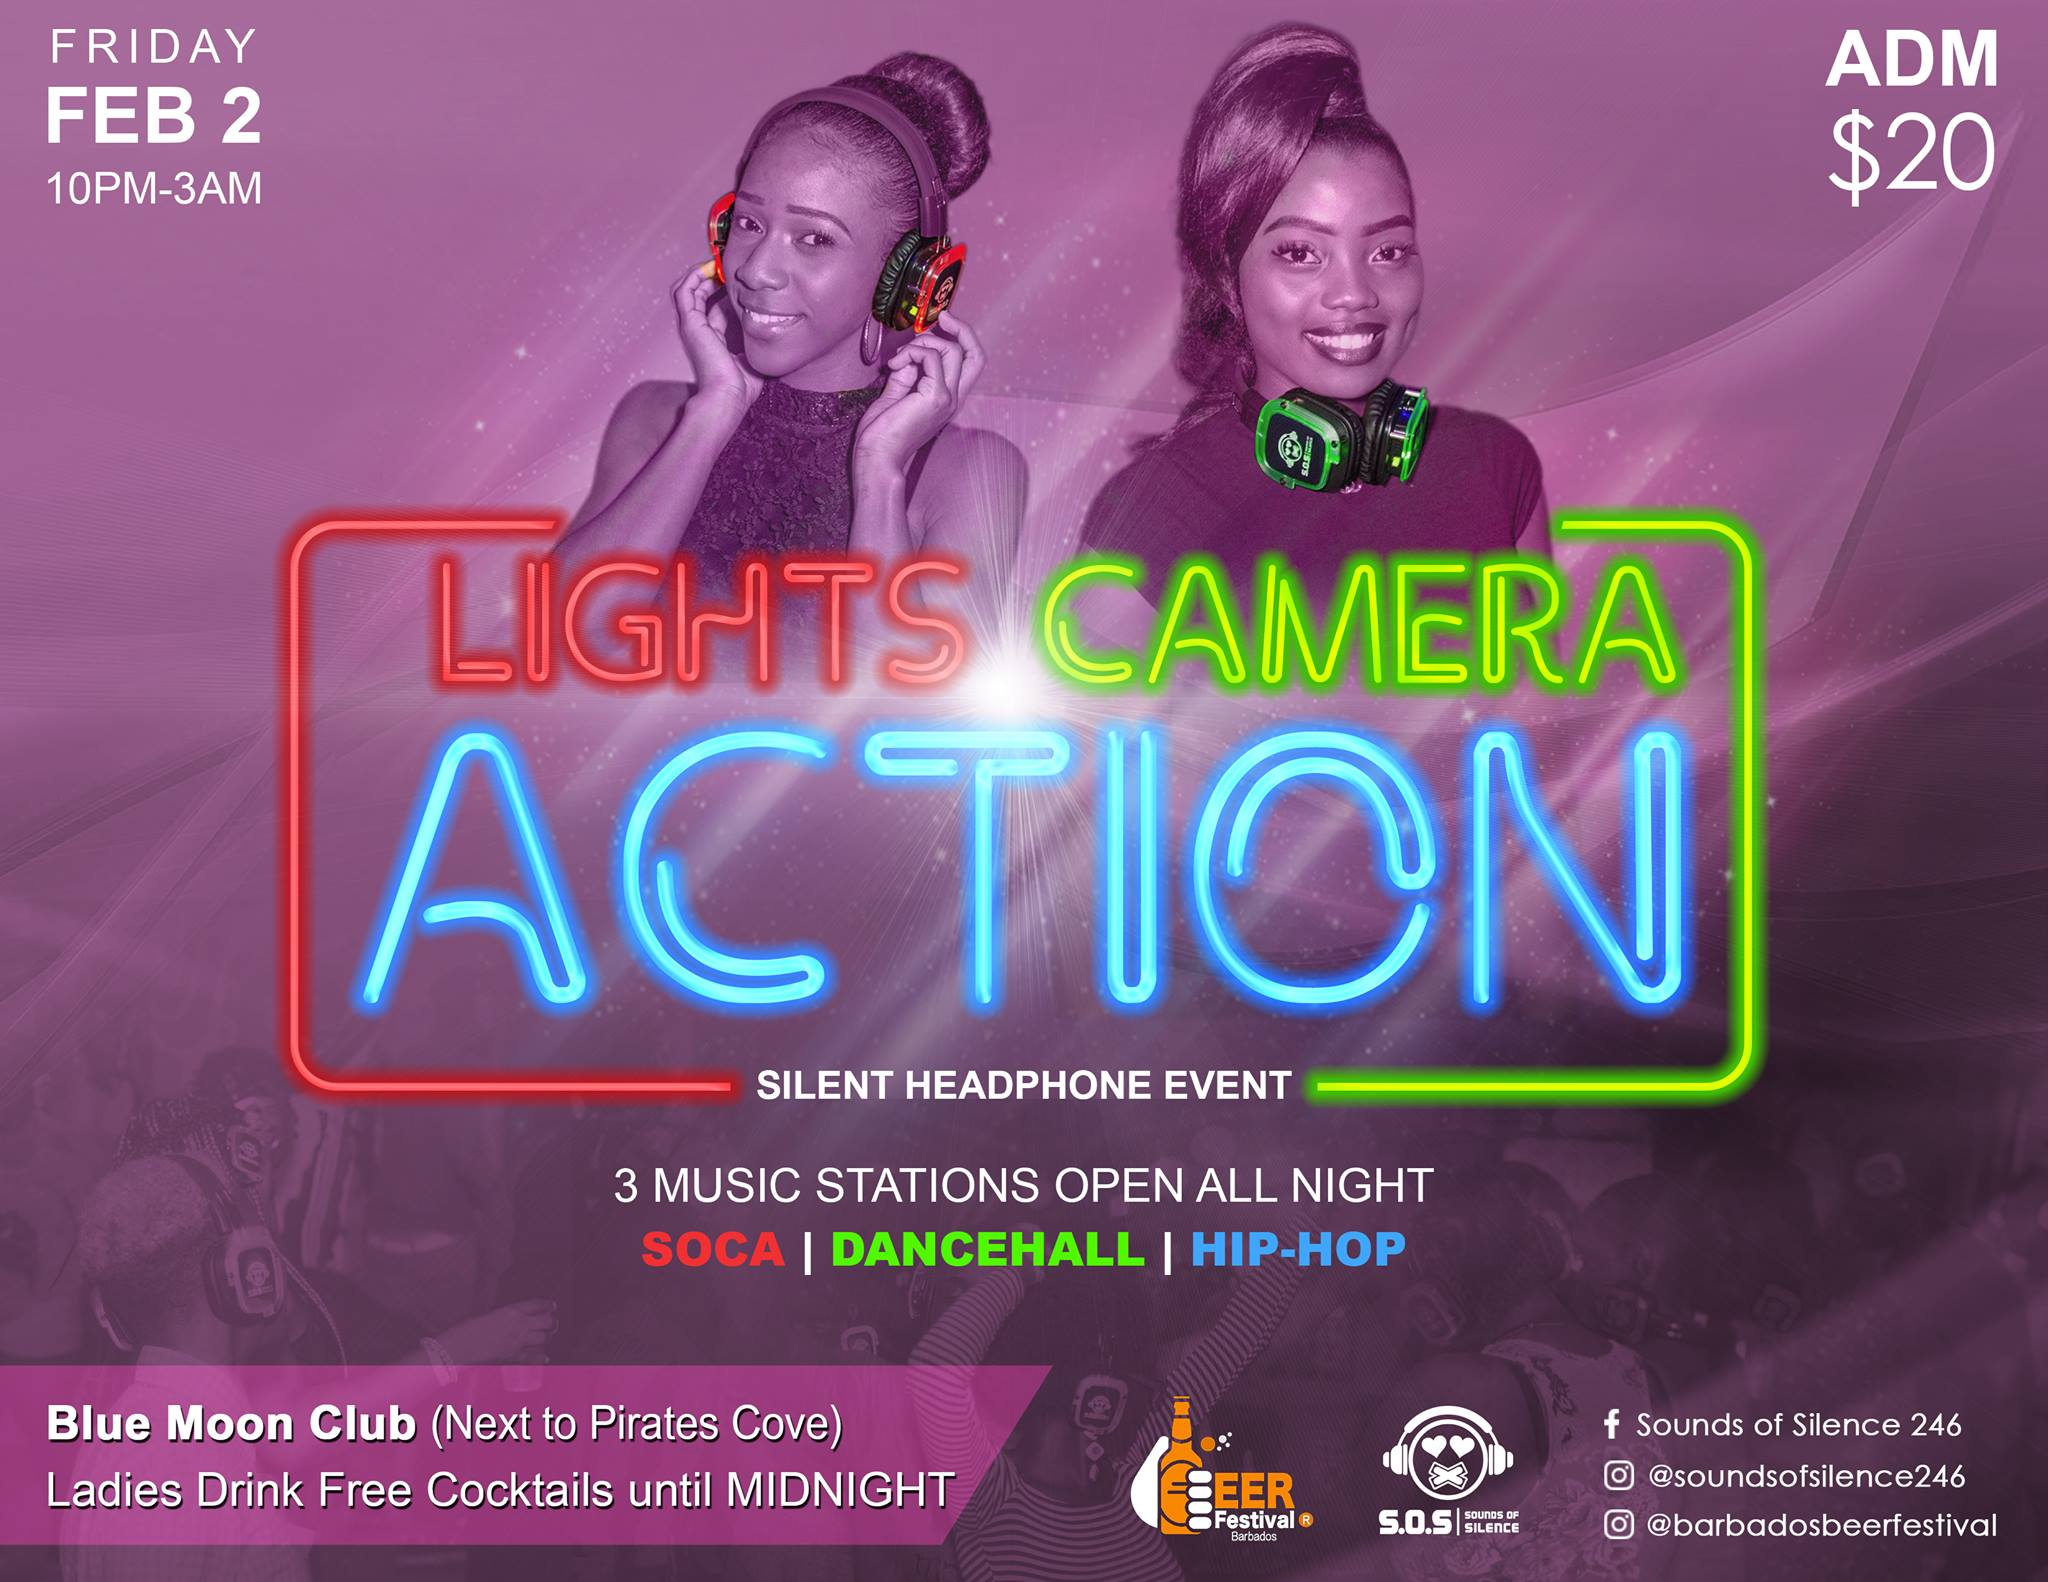 Silent event - Lights, Camera, Action